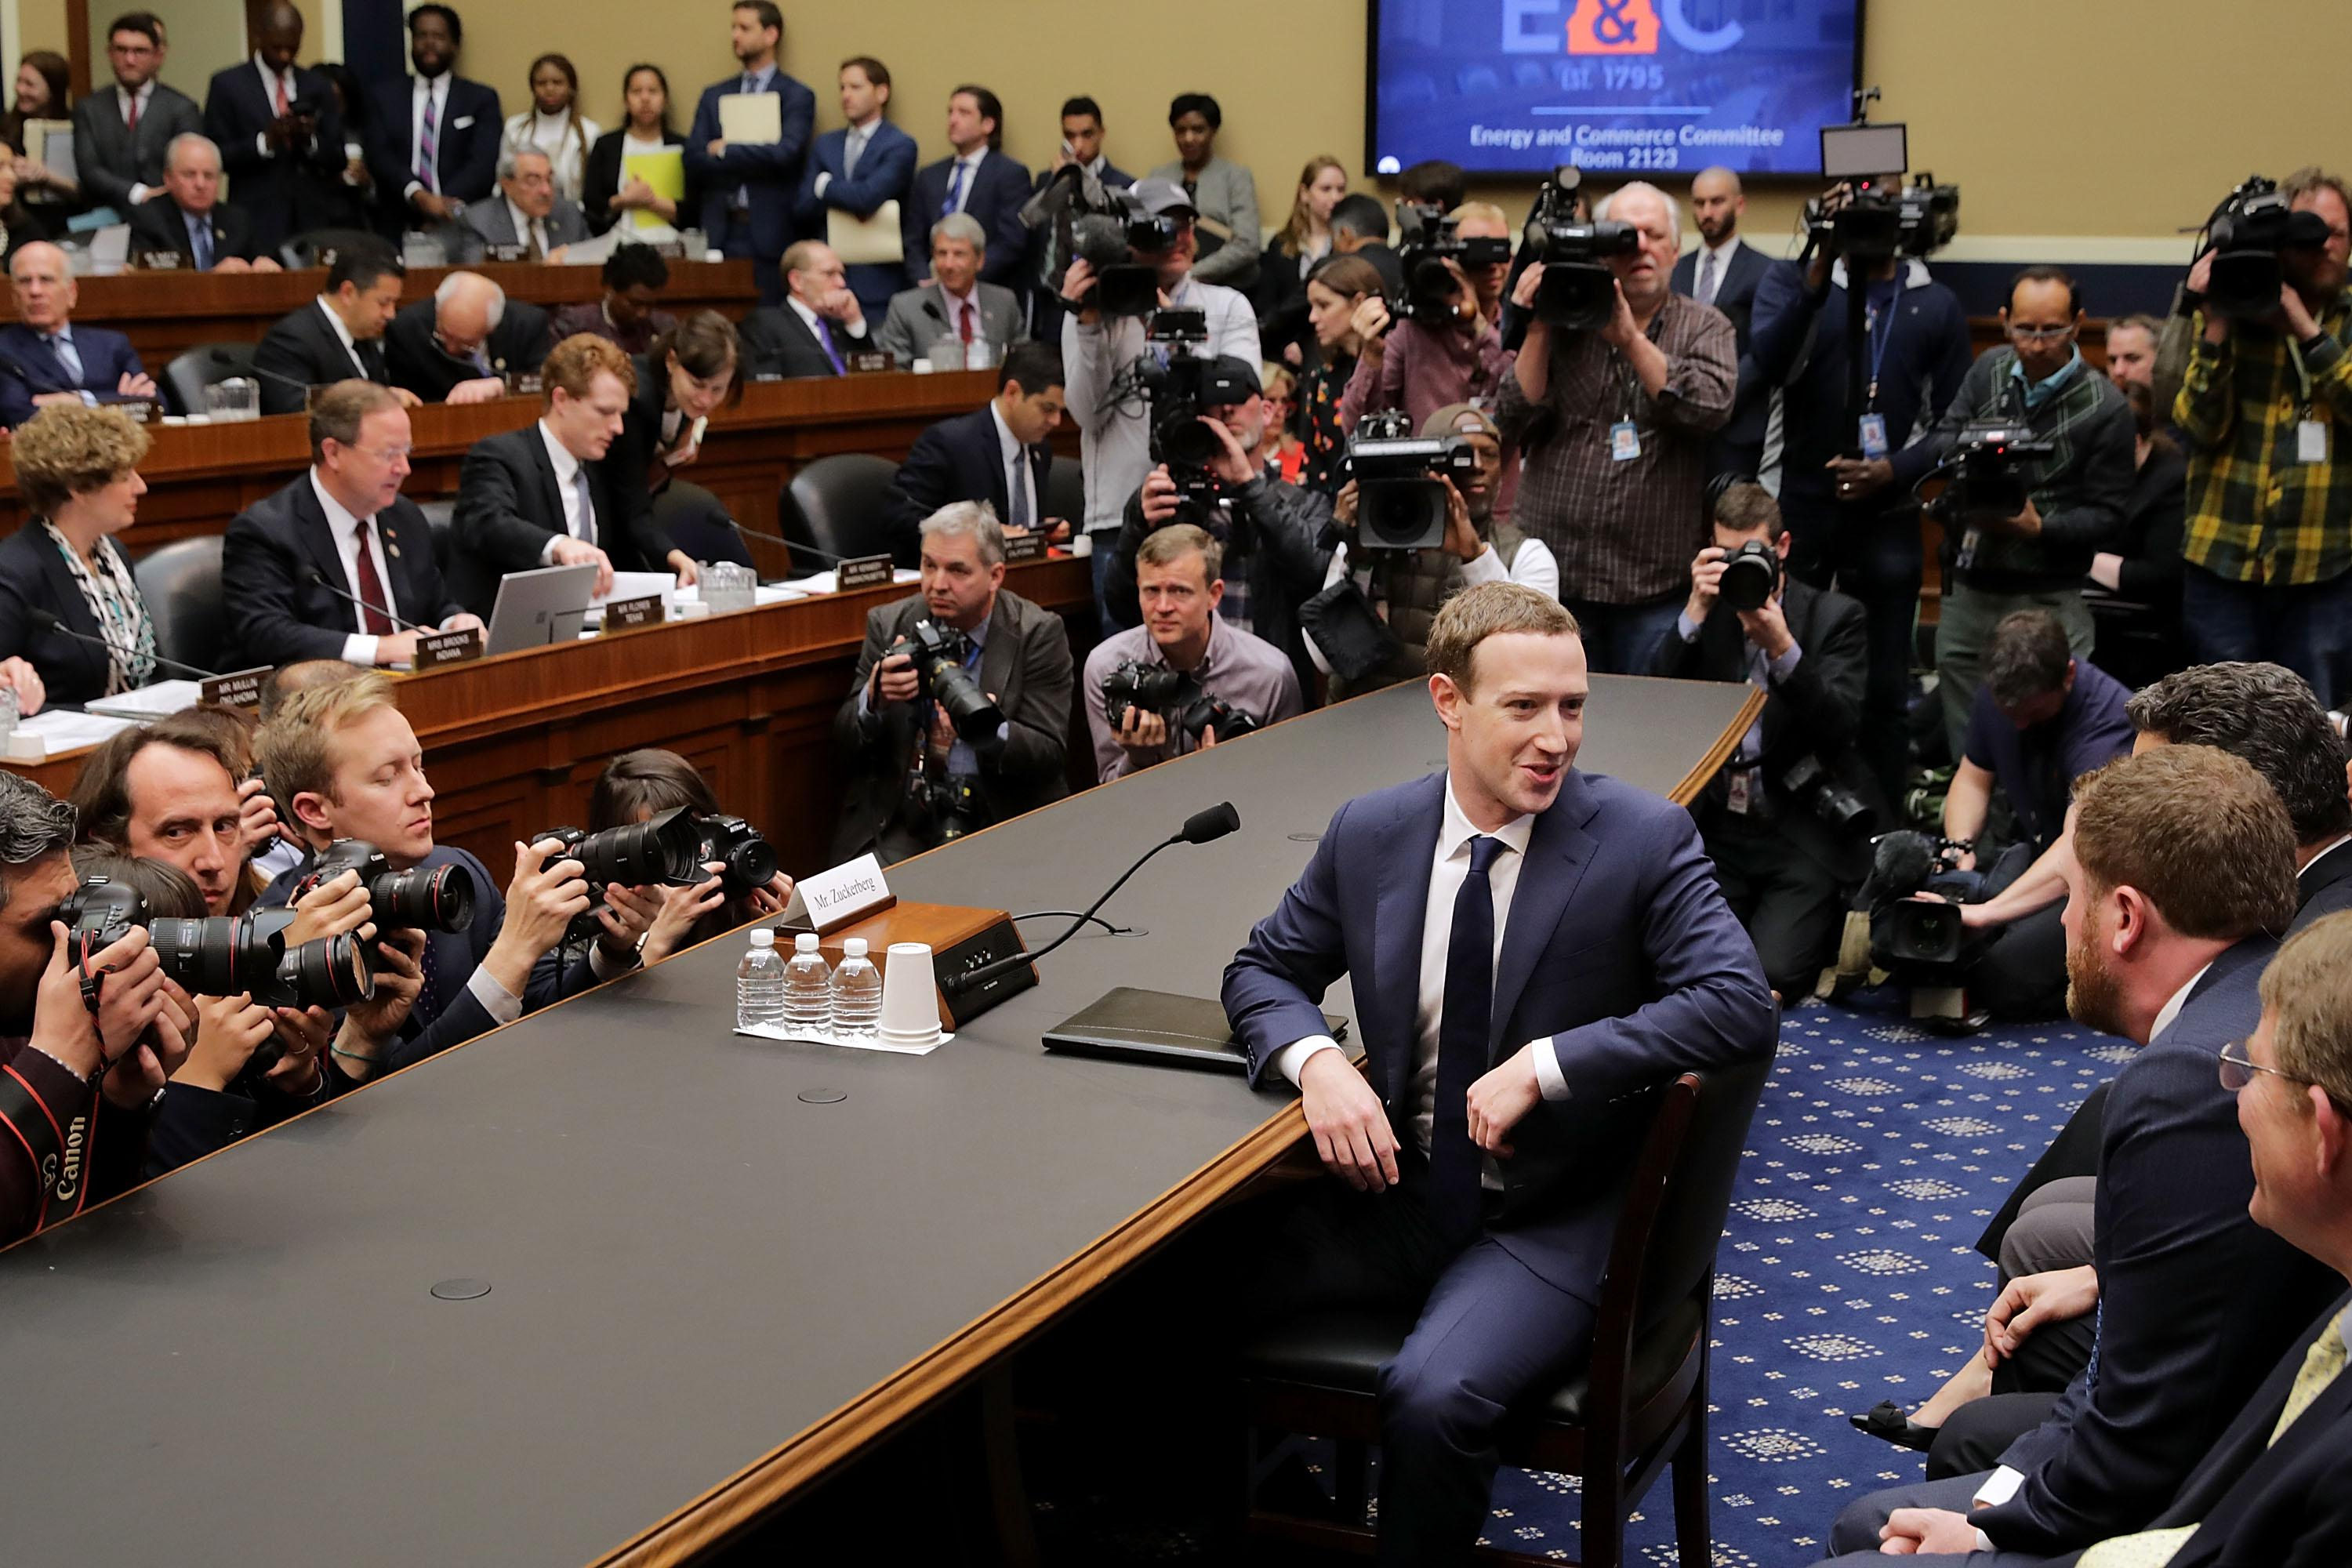 Mark Zuckerberg prepares to testify before the House Energy and Commerce Committee in the Rayburn House Office Building.